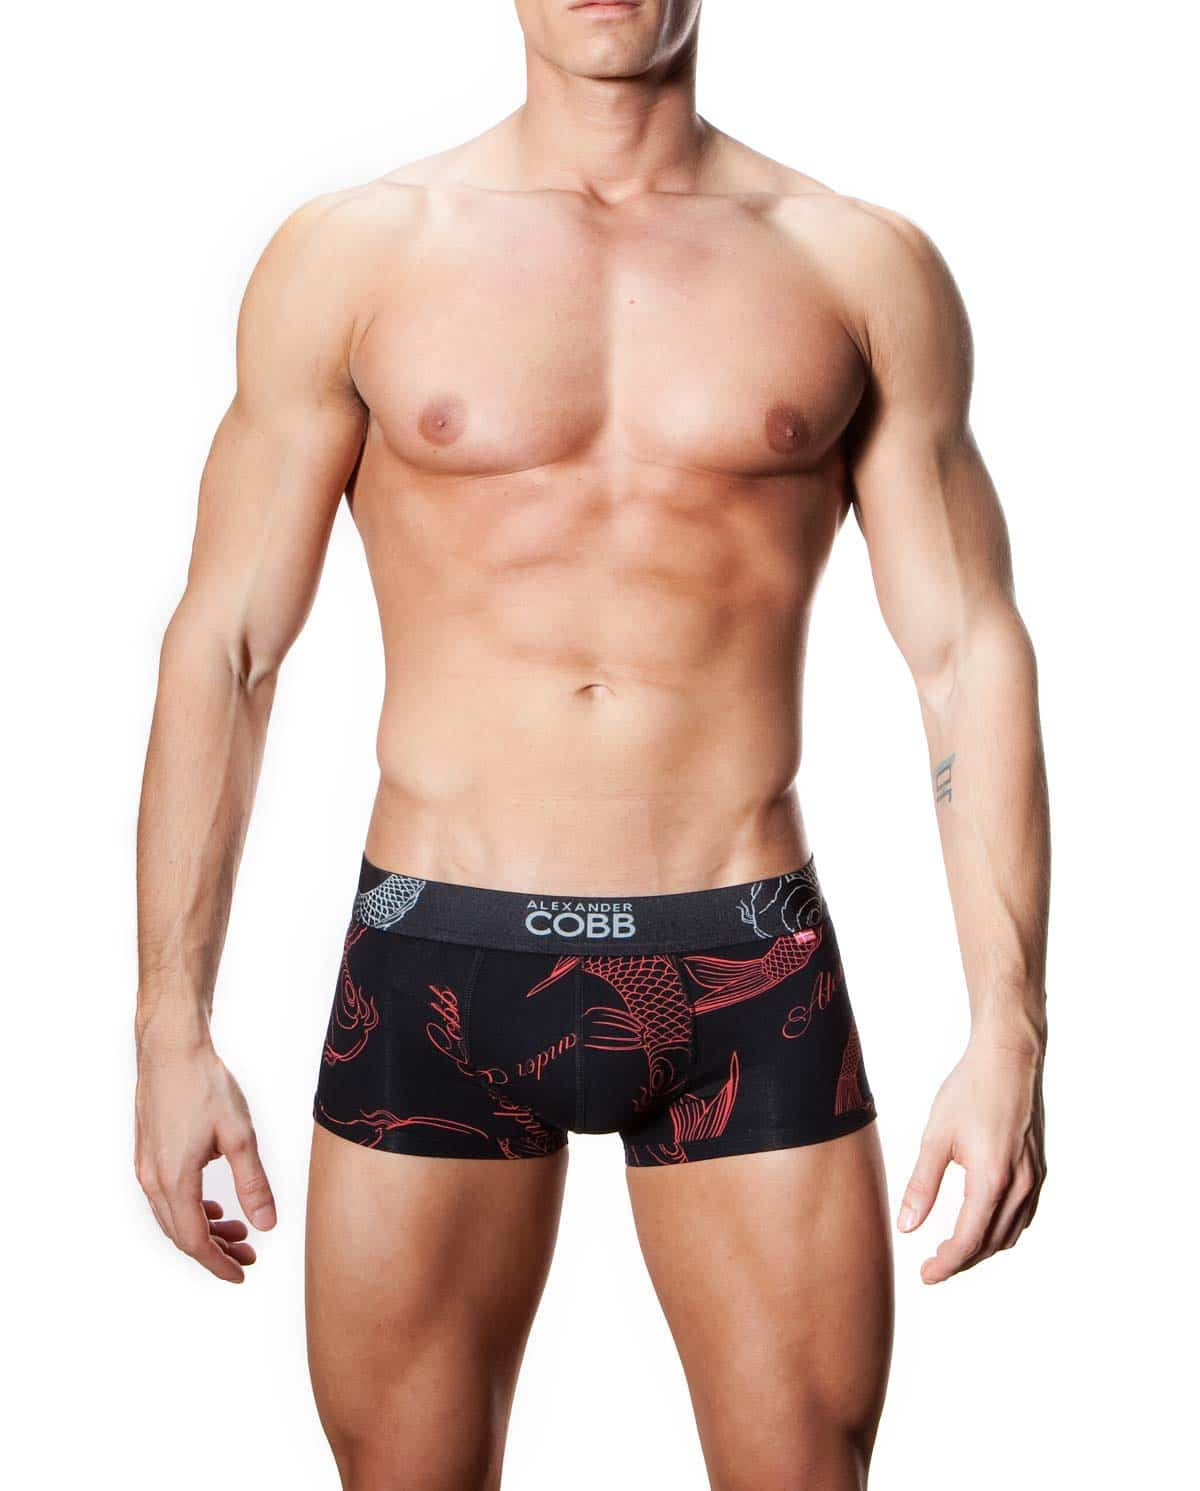 Male underwear model wearing Alexander COBB Men's Koi Trunk